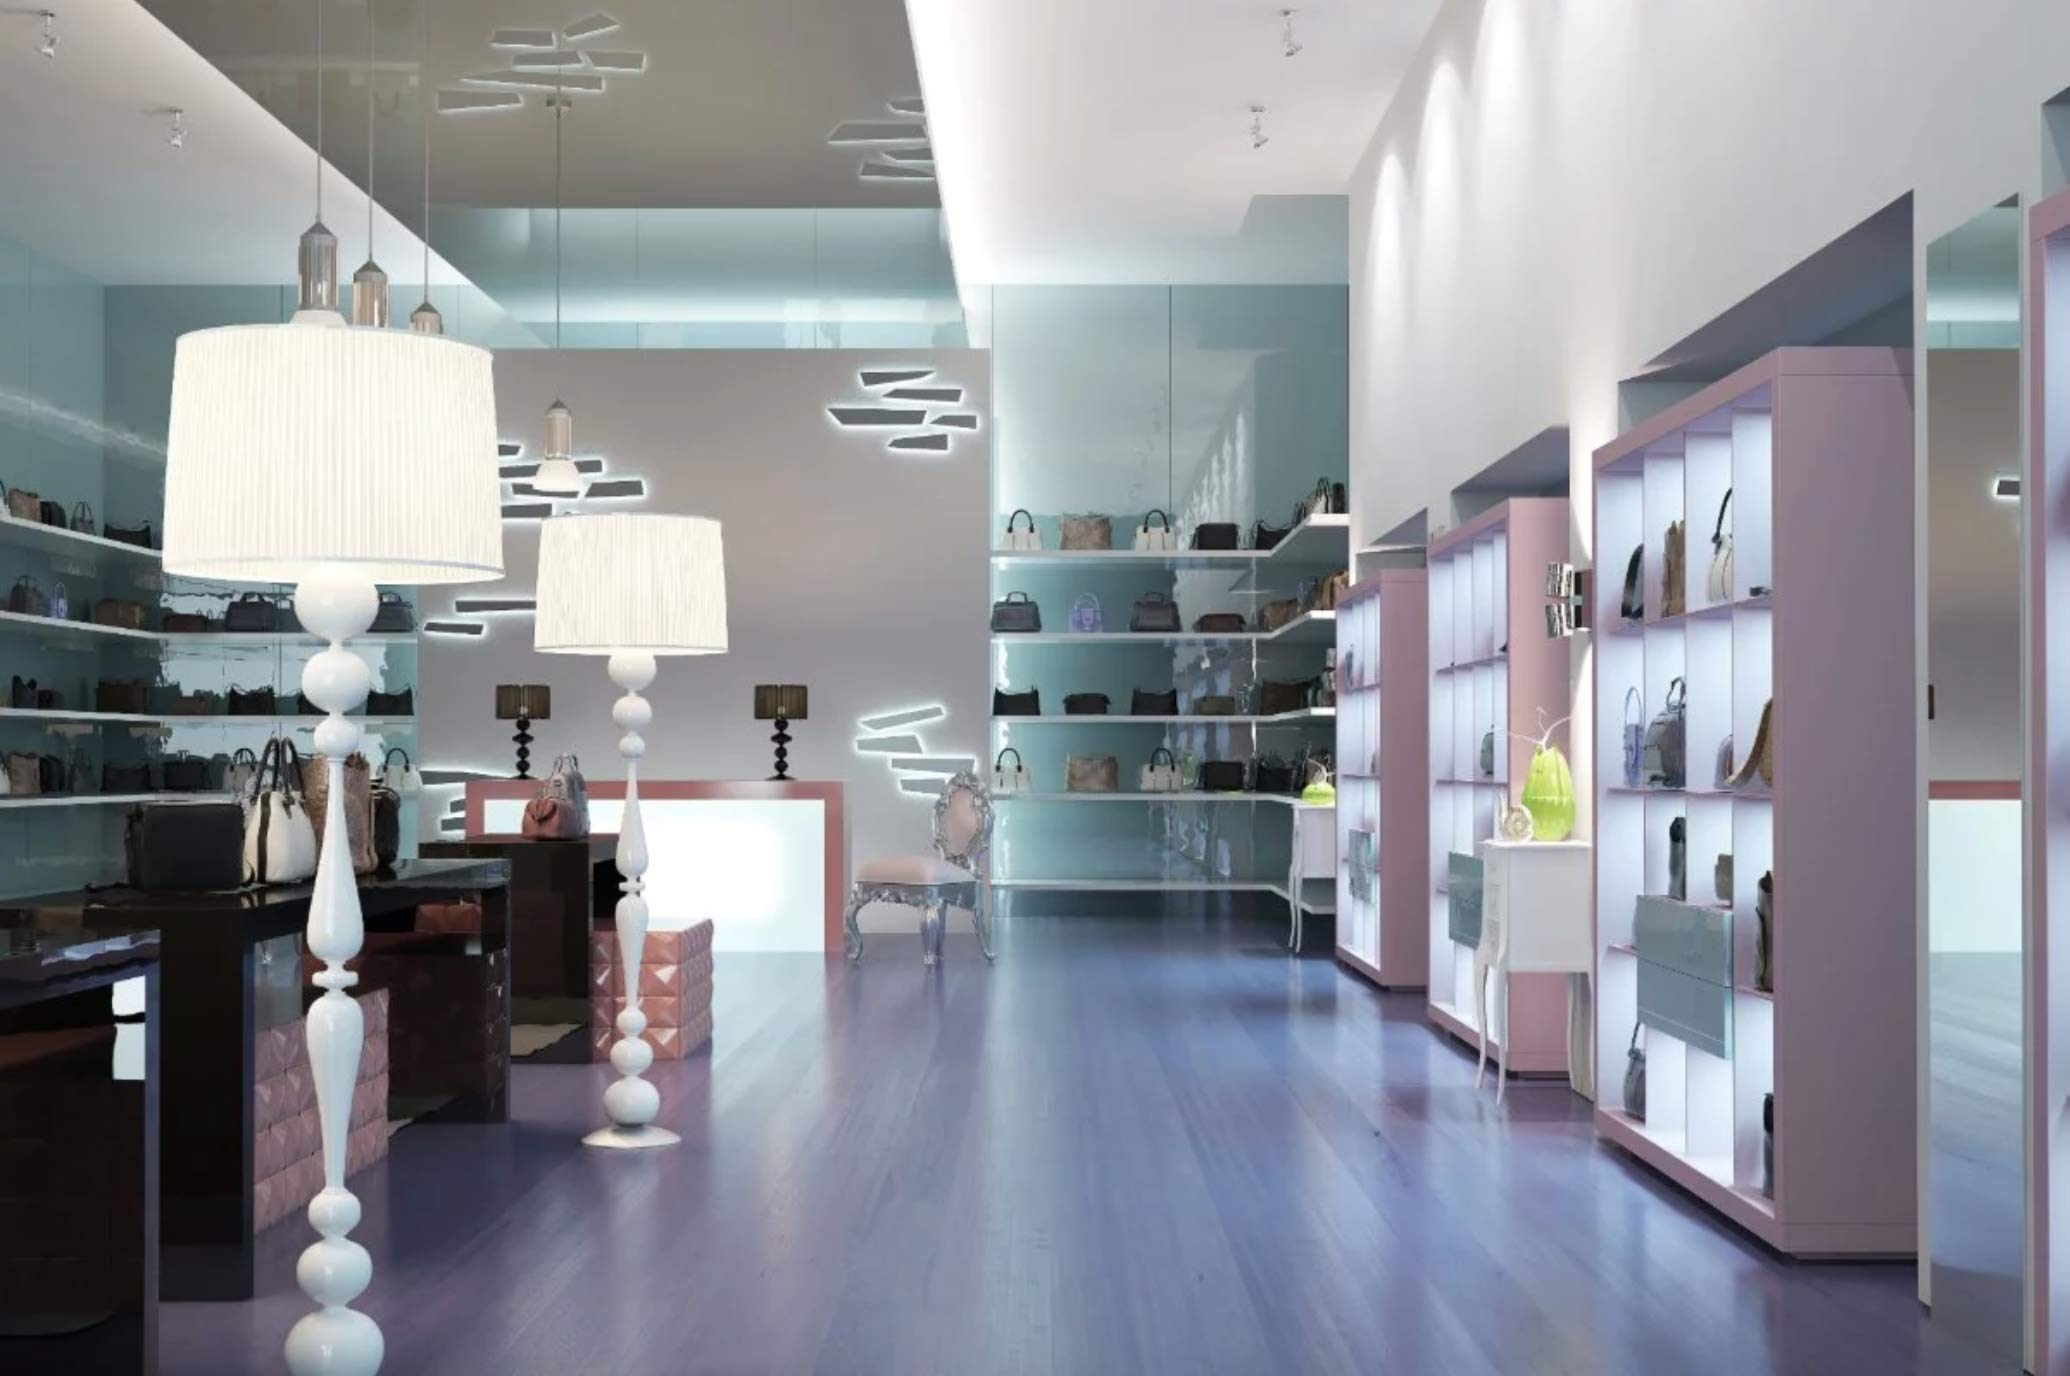 Retail lighting design: quali sono le strategie più efficaci